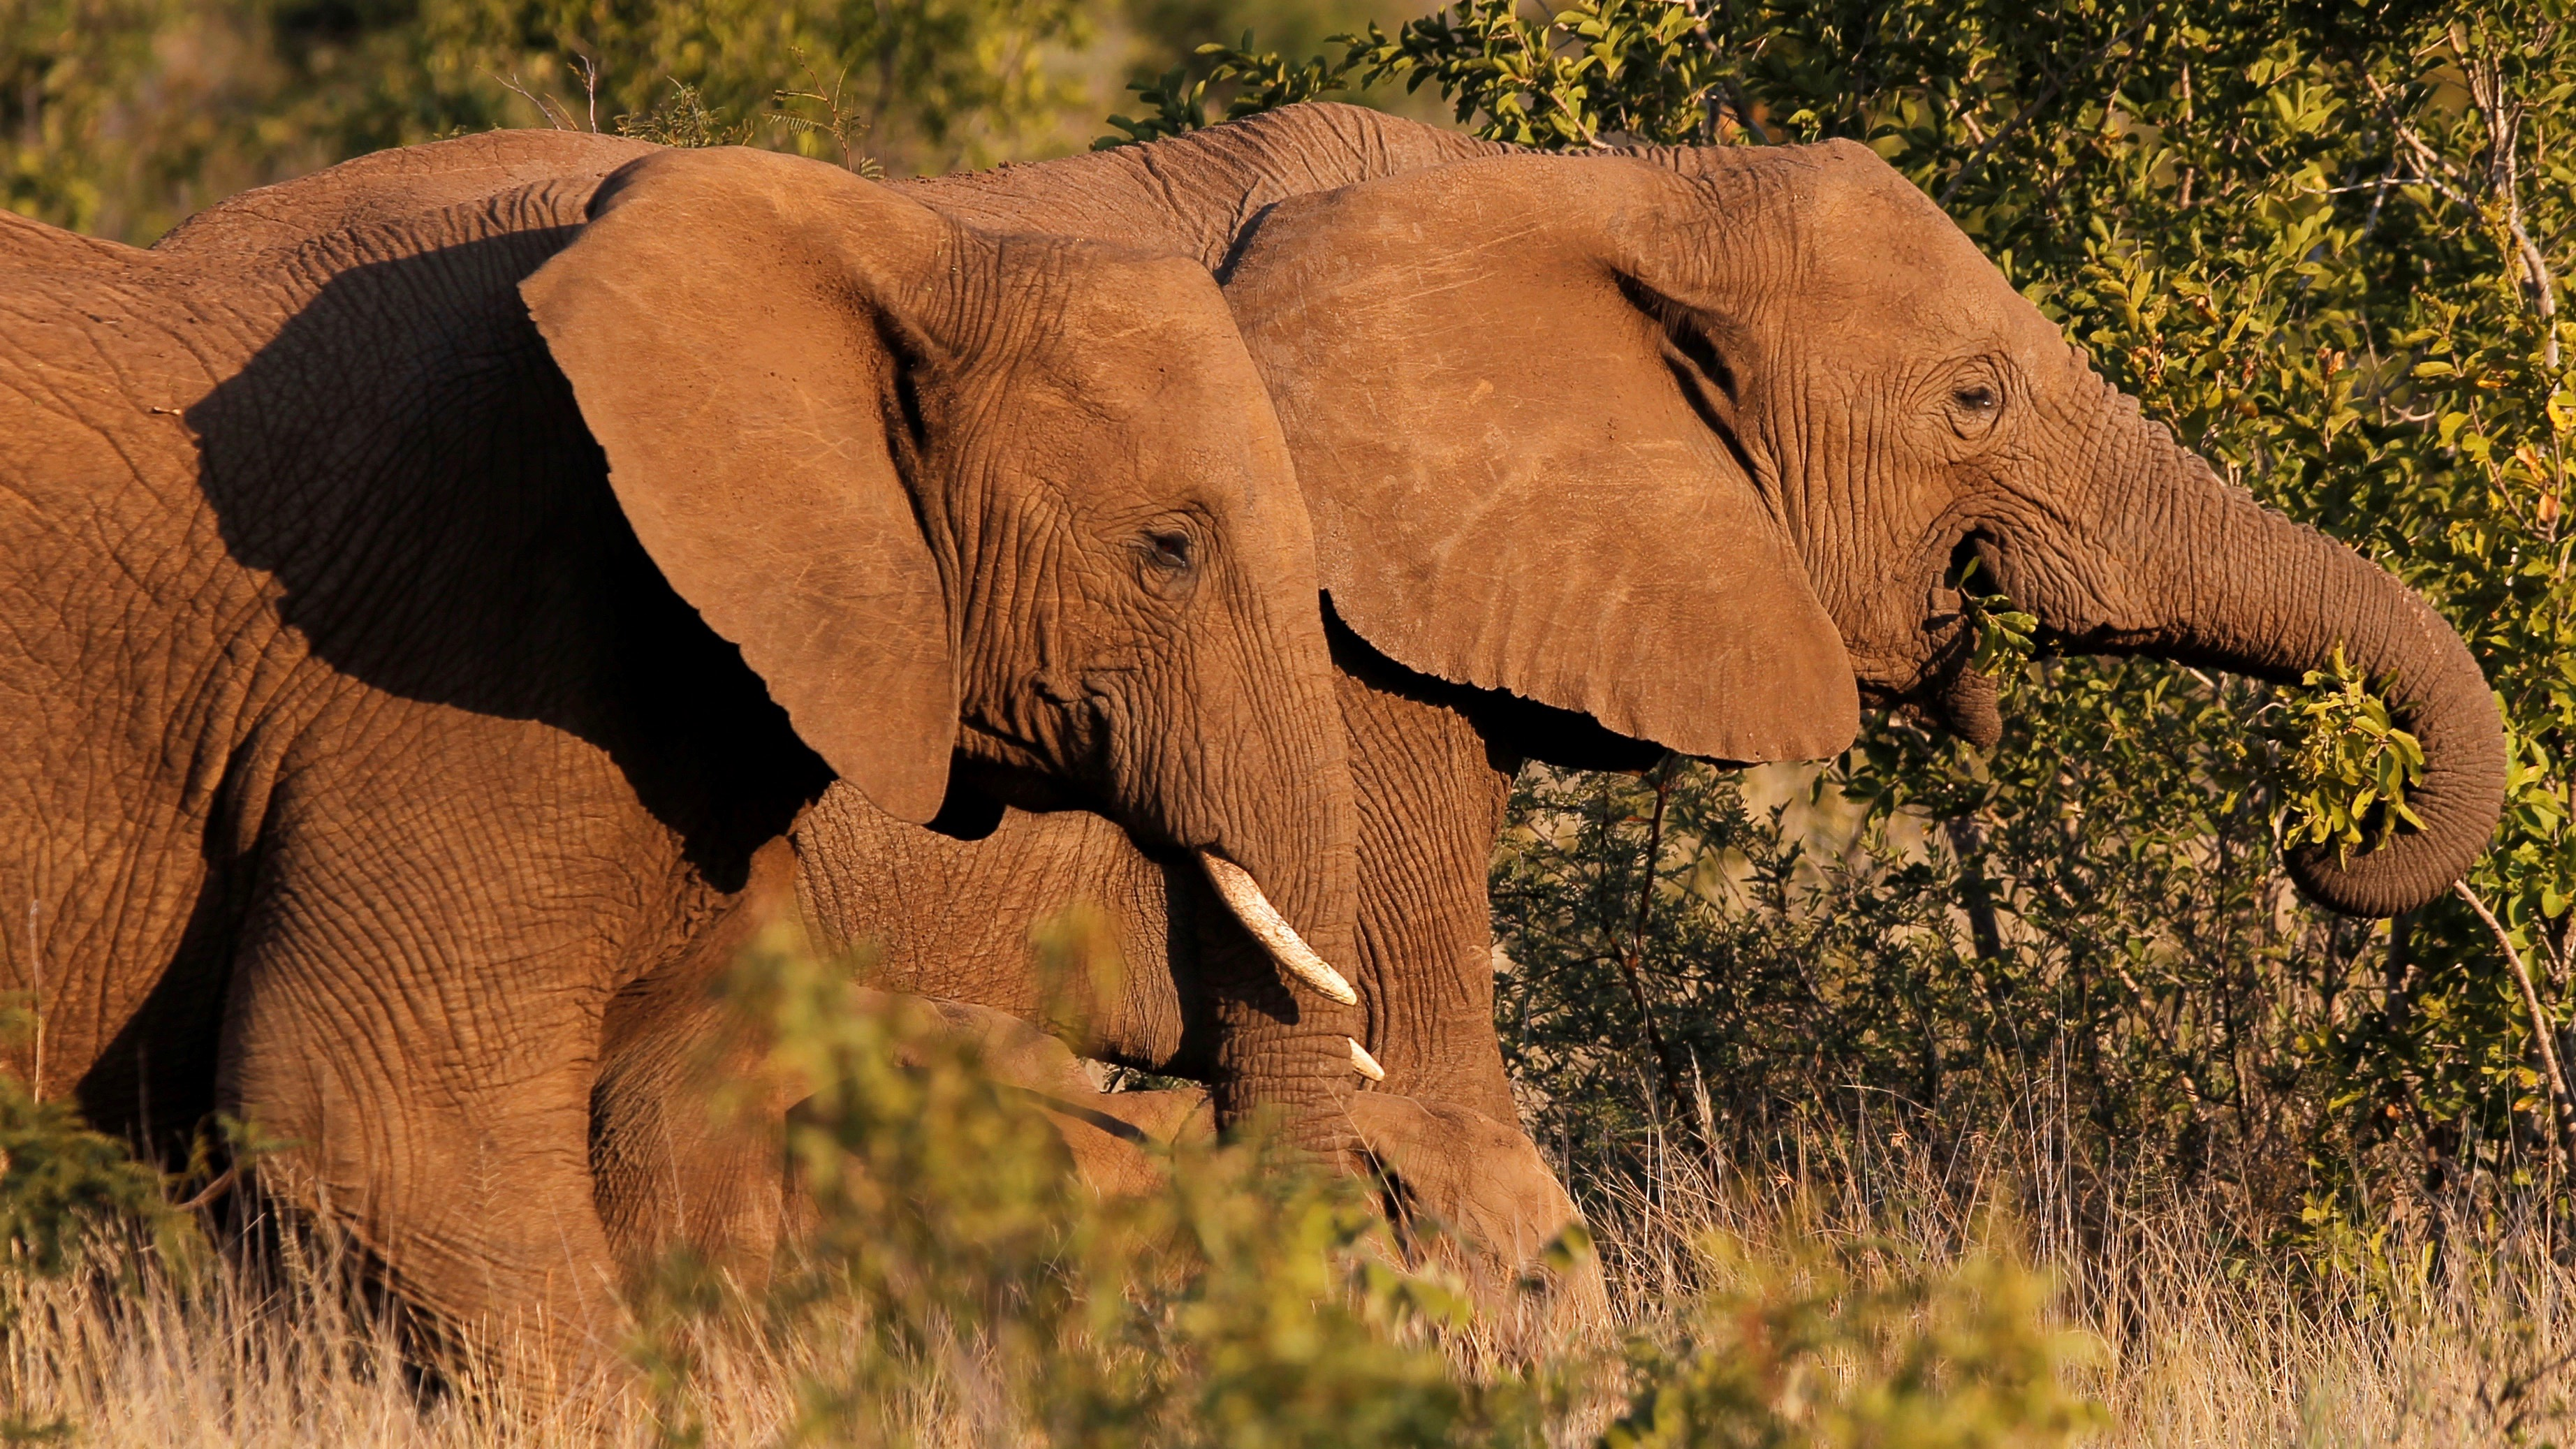 A pair of elephants walk in a national park in South Africa.